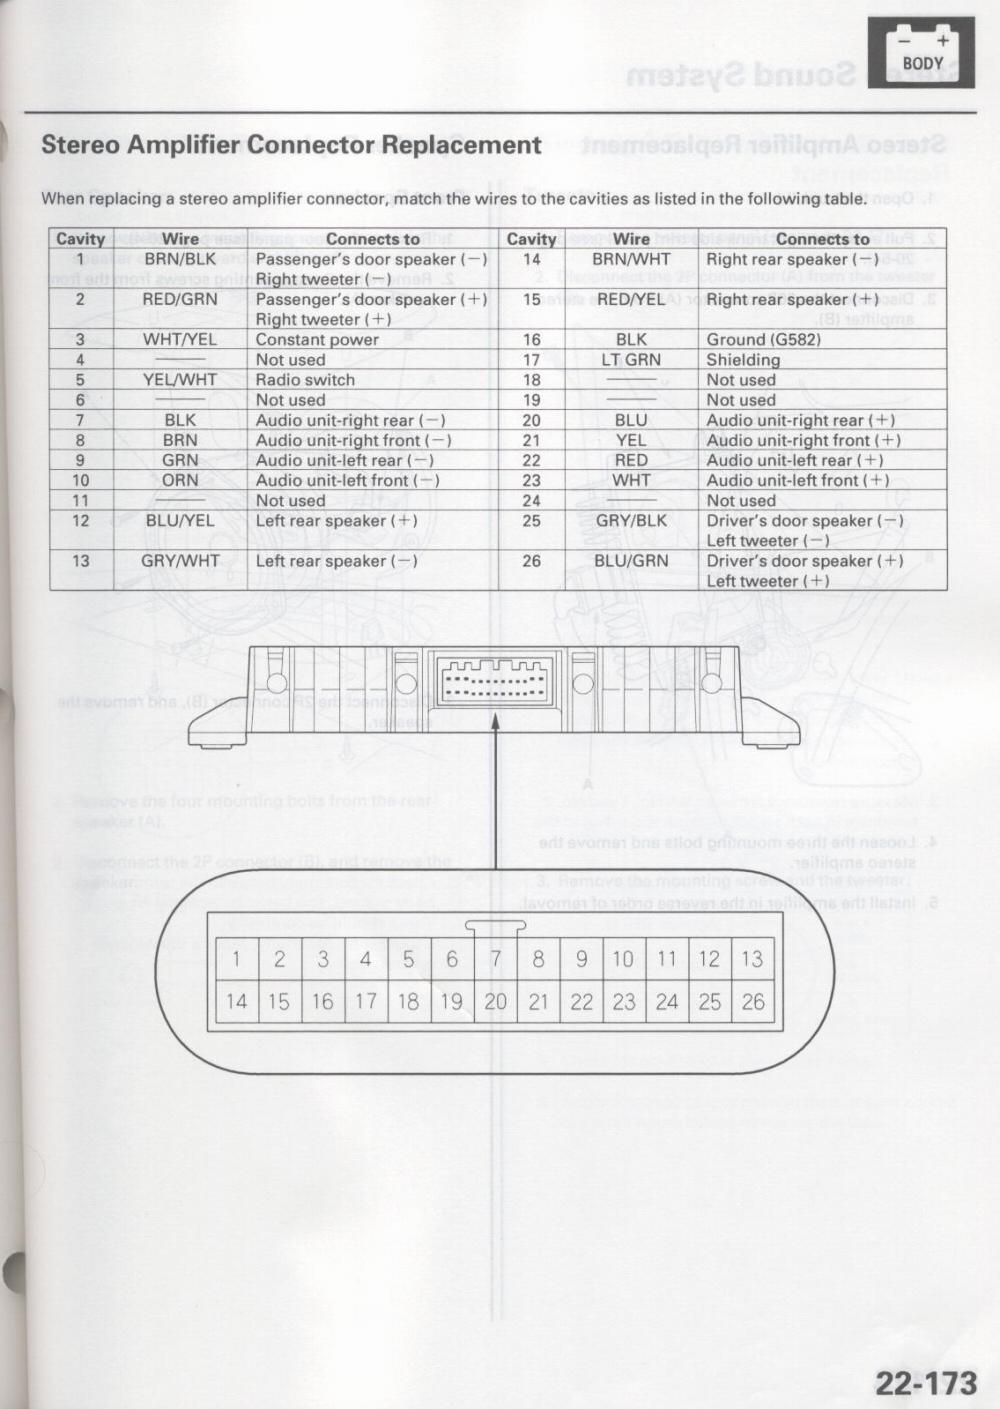 Acura 2002 TL car stereo amplifier wiring diagram harness acura rsx radio wiring diagram 2007 acura wiring \u2022 wiring diagrams 02 honda civic radio wiring diagram at soozxer.org